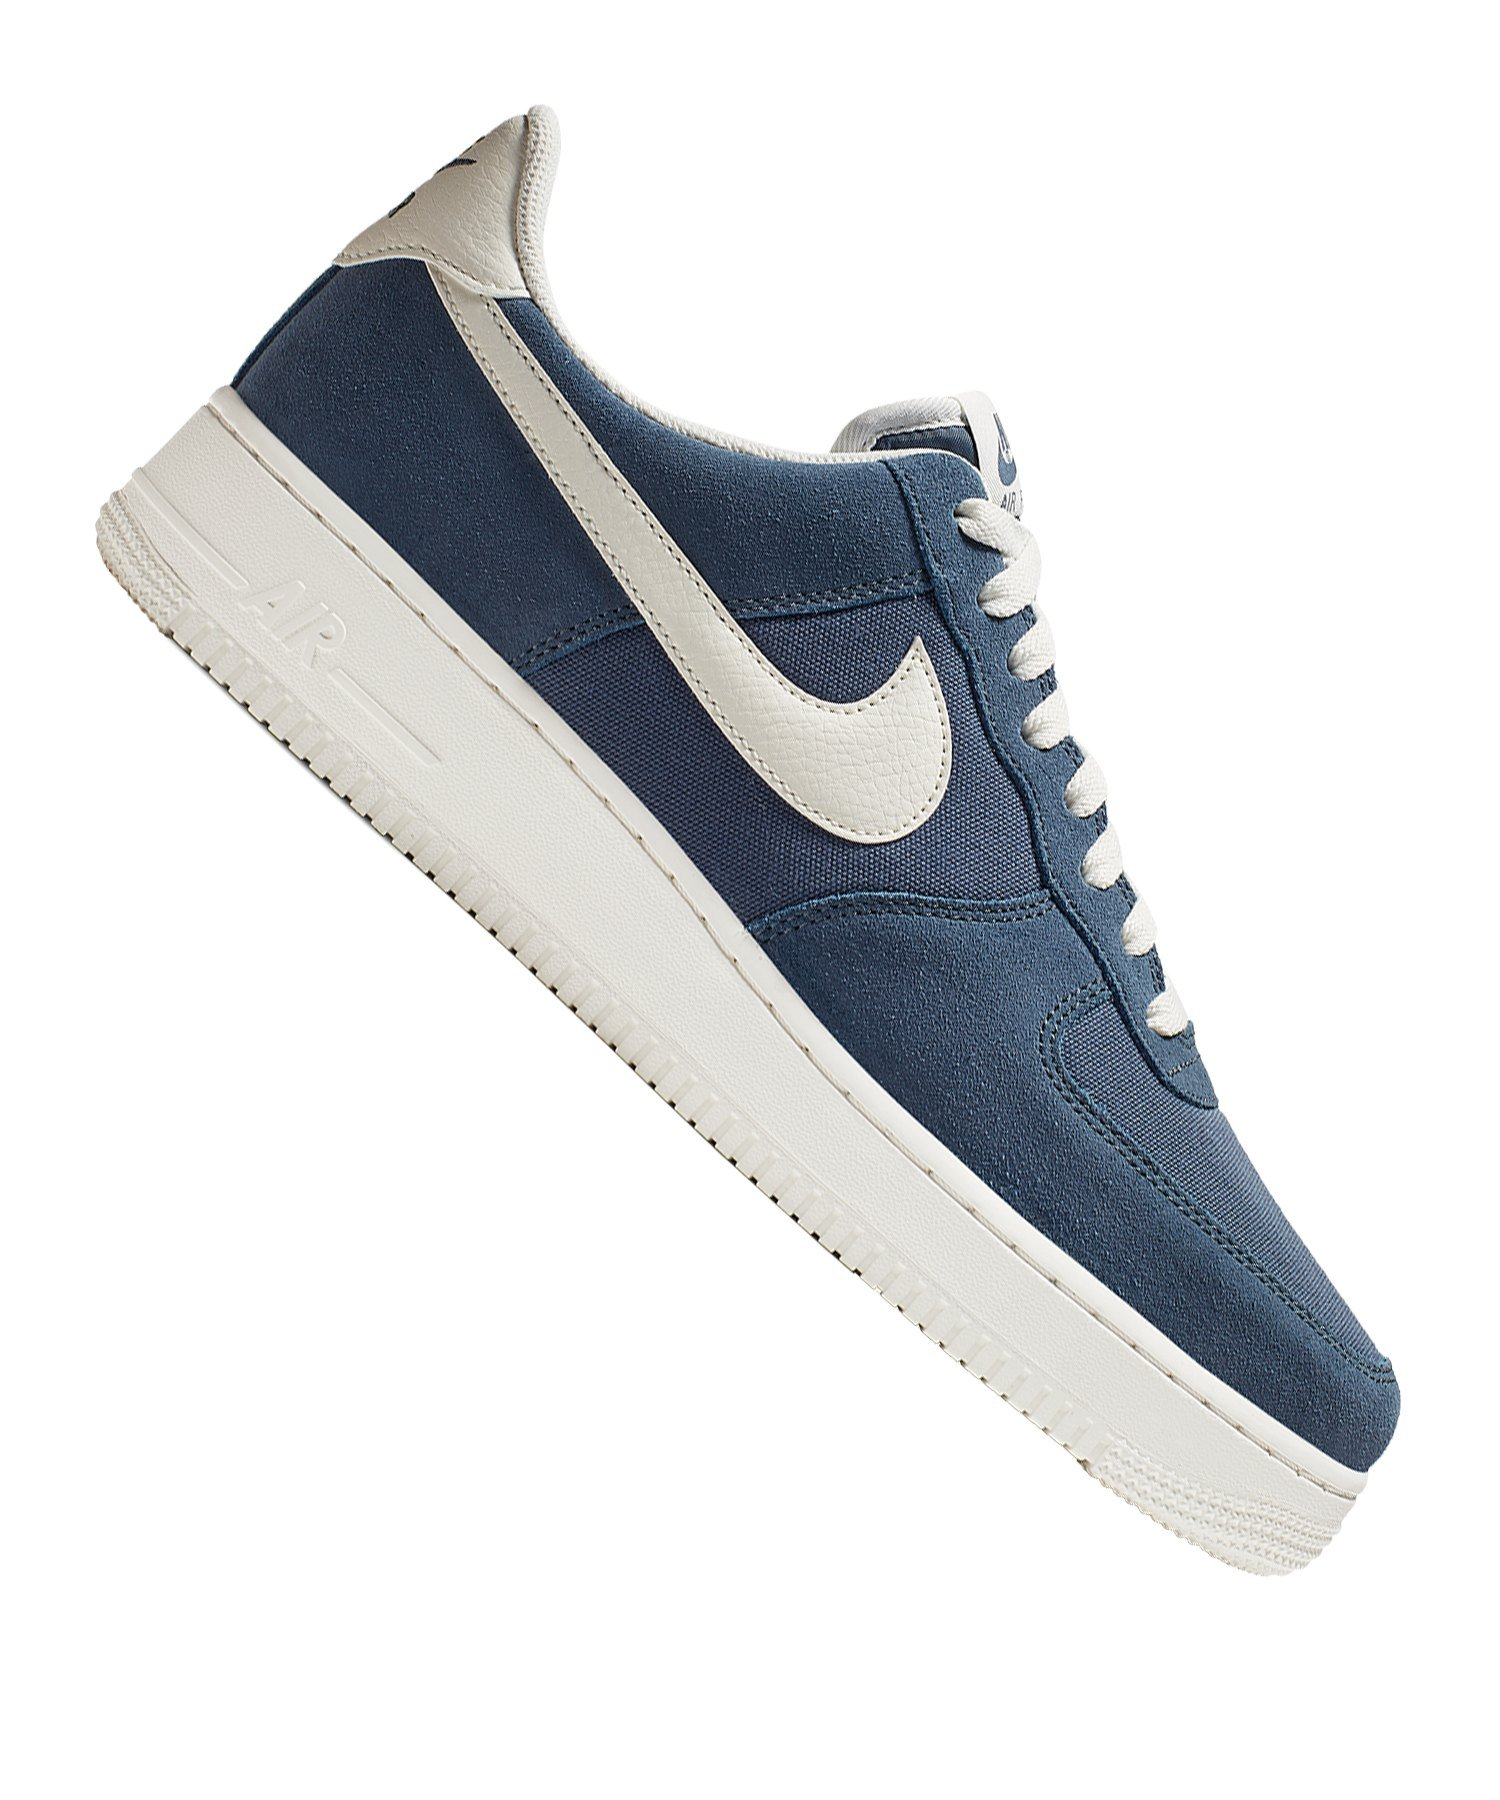 Nike Air Force 1 07 II Sneaker Blau Weiss F401